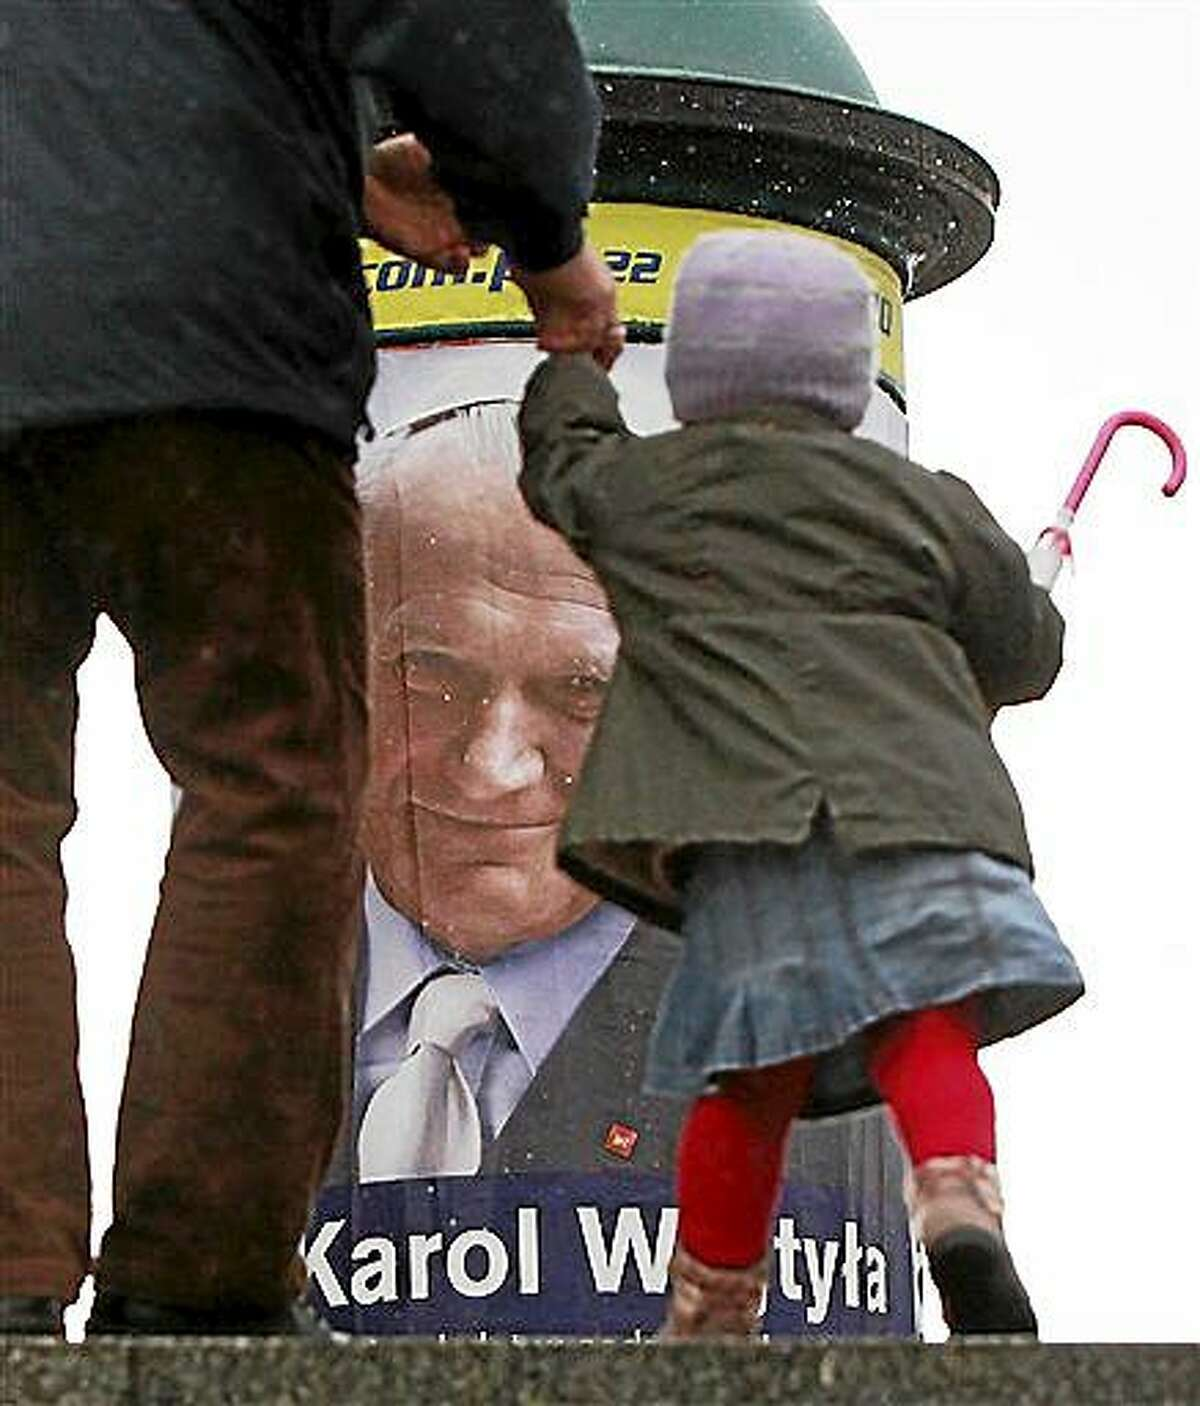 A pedestrian leads a child by a poster in Warsaw marking 10 years since the death of Polish-born Pope John Paul II. The poster encourages people to make their daily decisions in accordance with his teachings. John Paul will be gone a decade on Thursday. To attract attention to the poster, the pope, born as Karol Wojtyla, appears as a lay candidate in Poland's May 10 presidential elections.